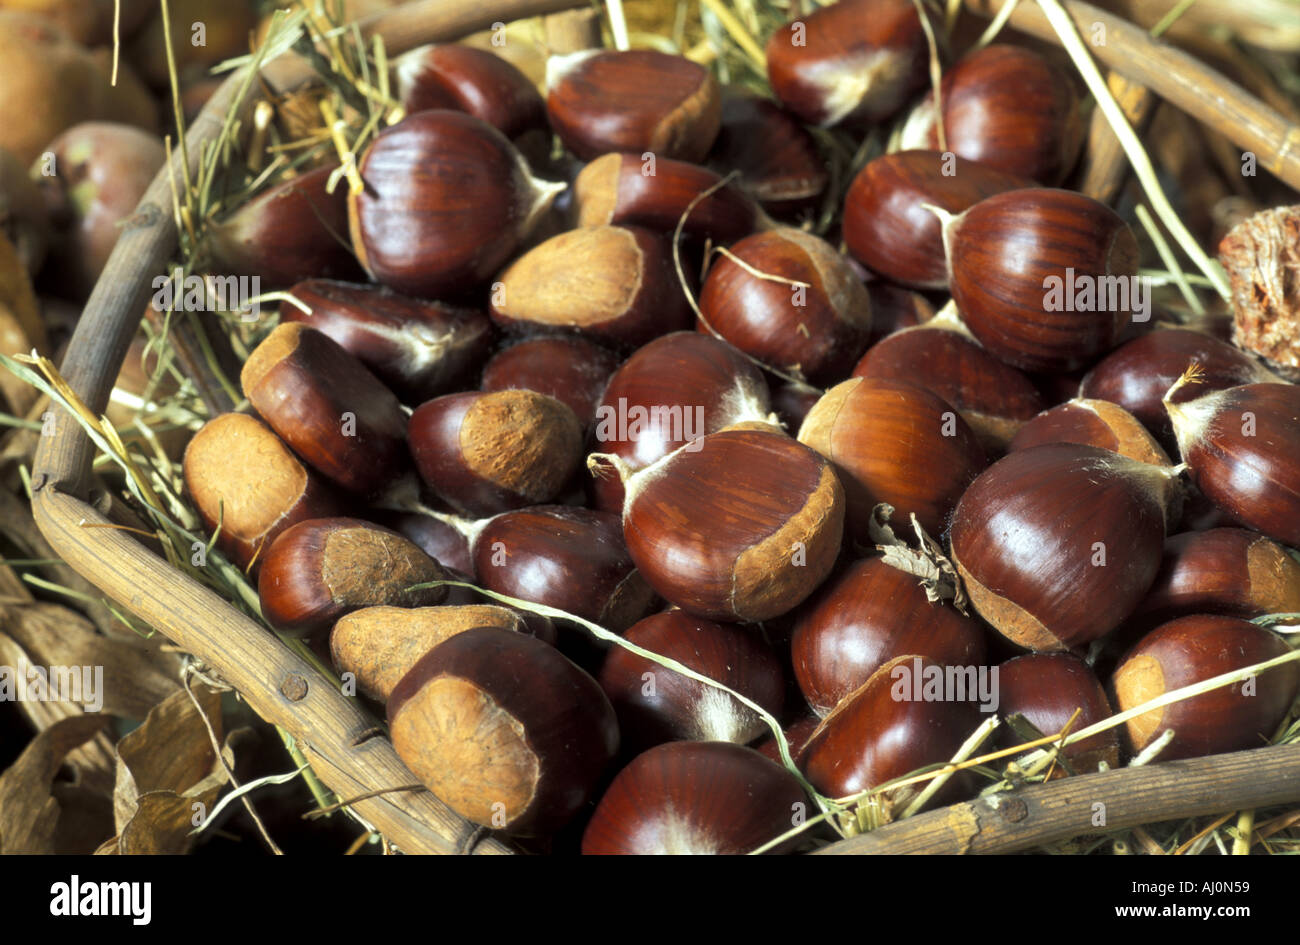 Colossal chestnut Italy - Stock Image